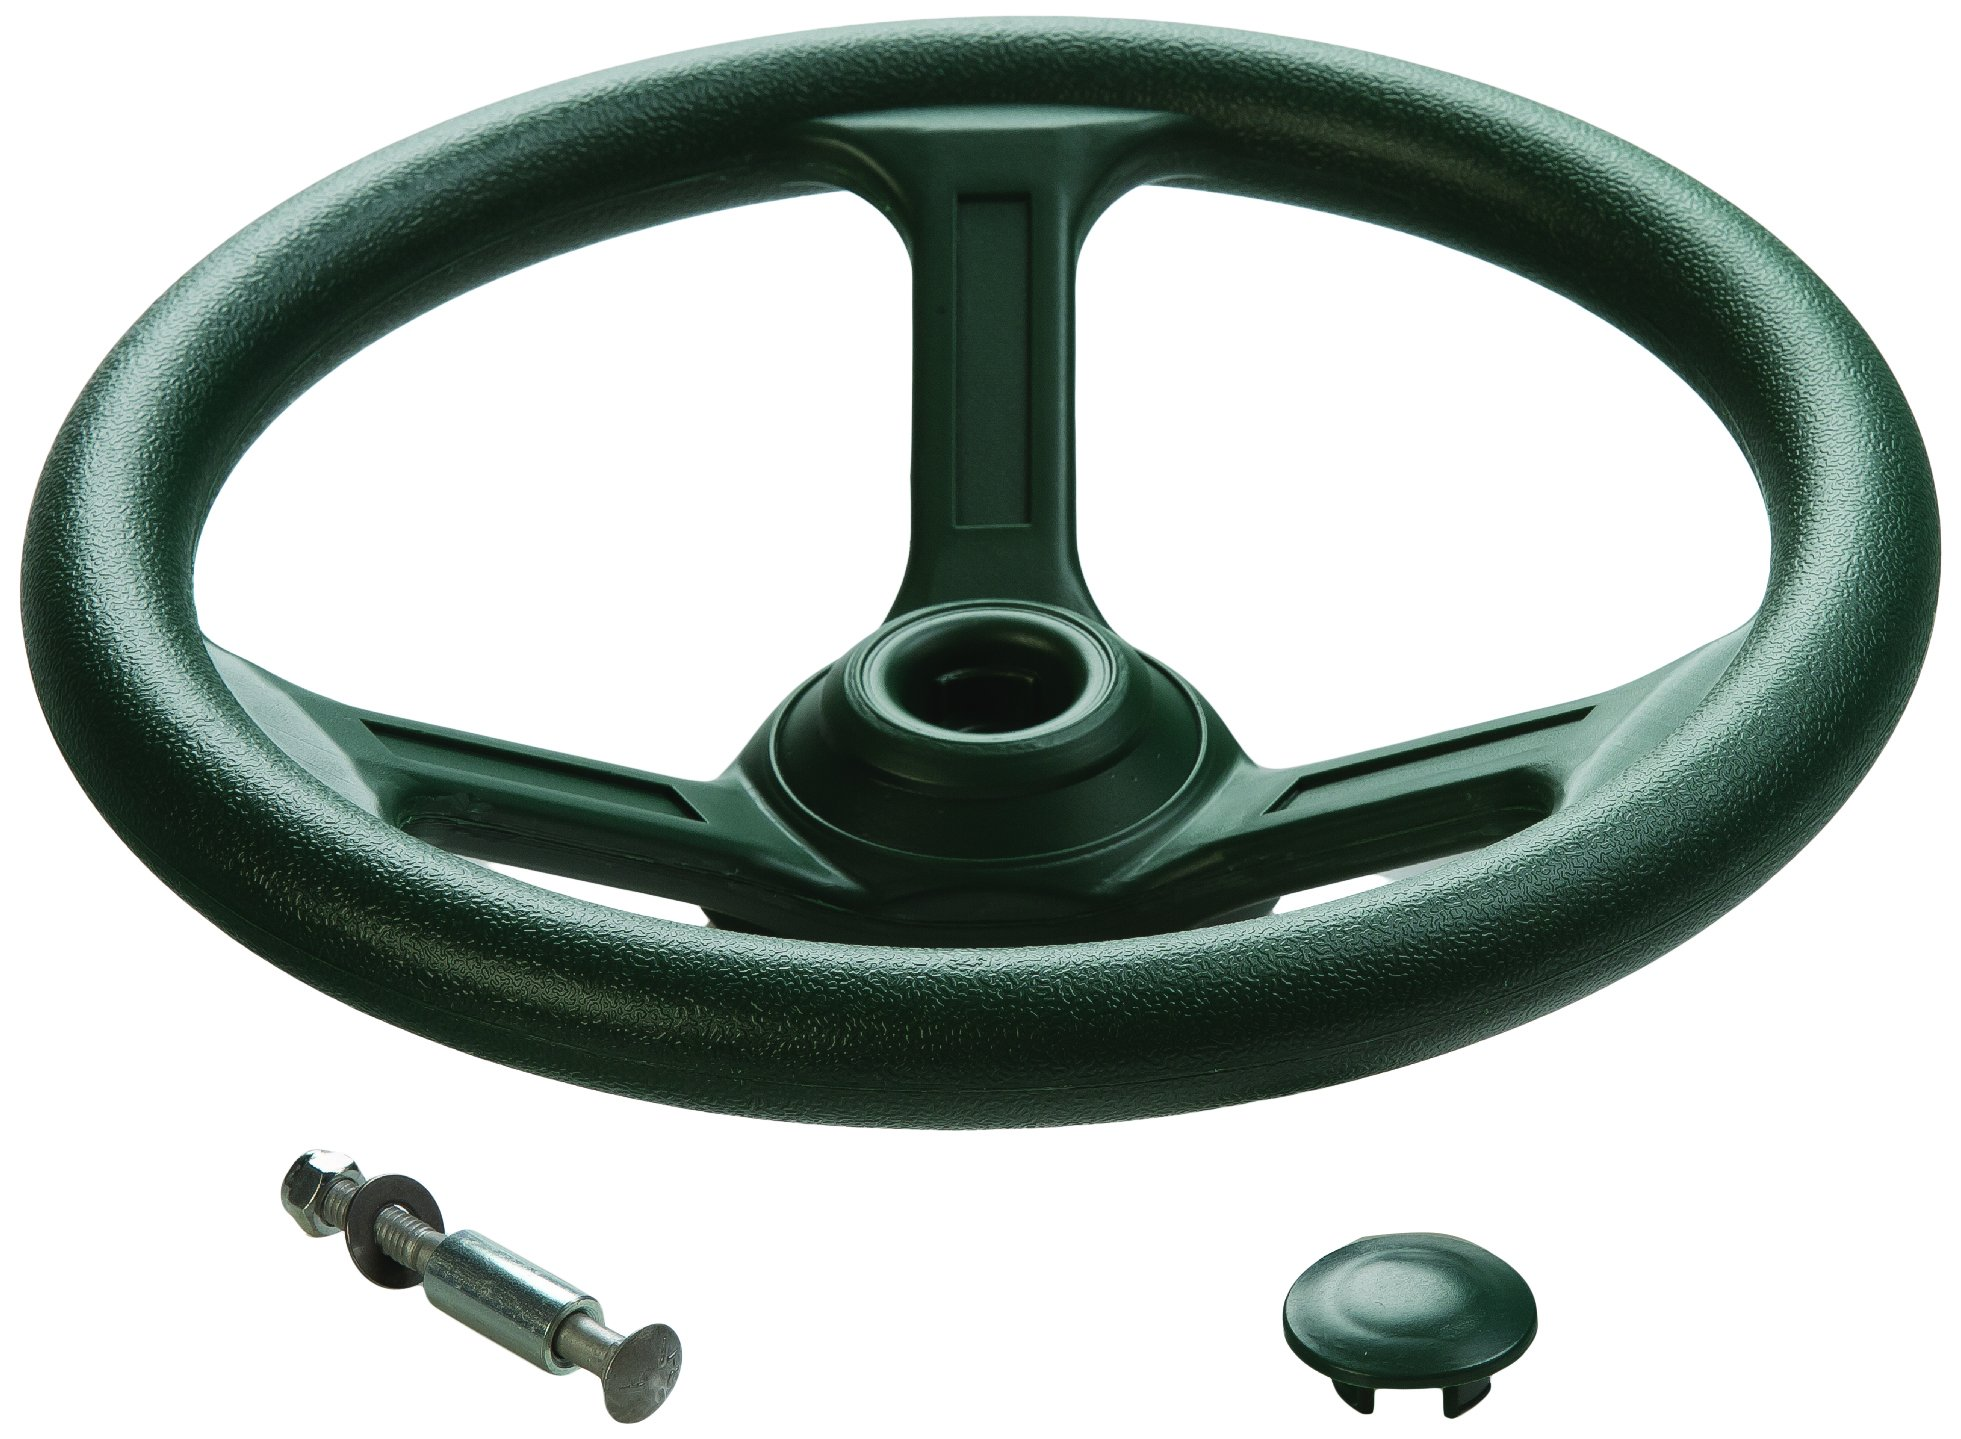 CREATIVE CEDAR DESIGNS Playset Steering Wheel Accessory- Green, One Size by CREATIVE CEDAR DESIGNS